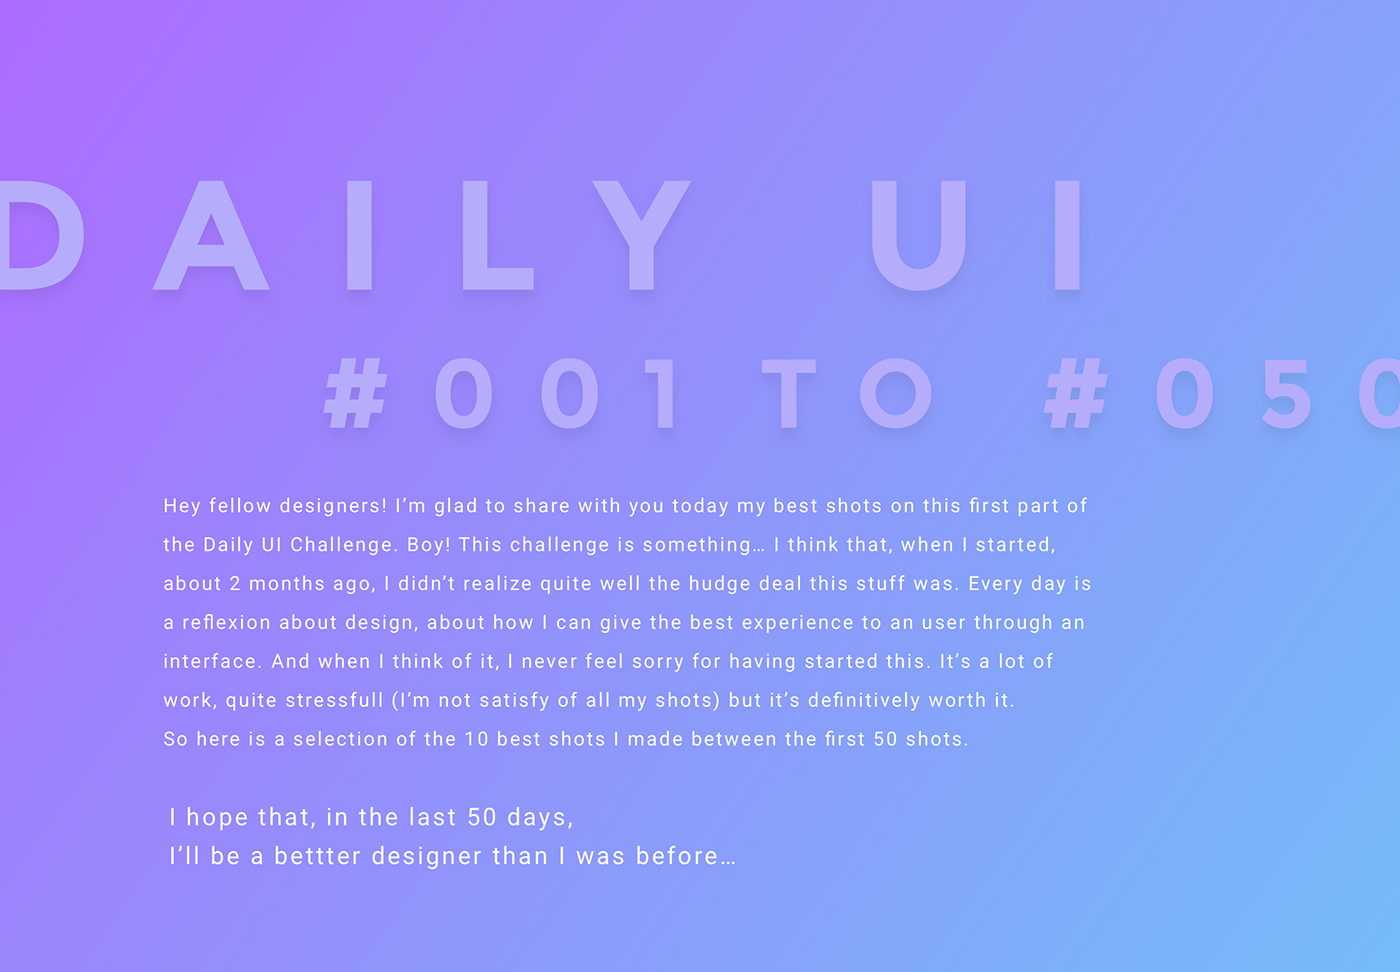 UI ux daily ui challenge Interface design summary Mobile app Webdesign interaction